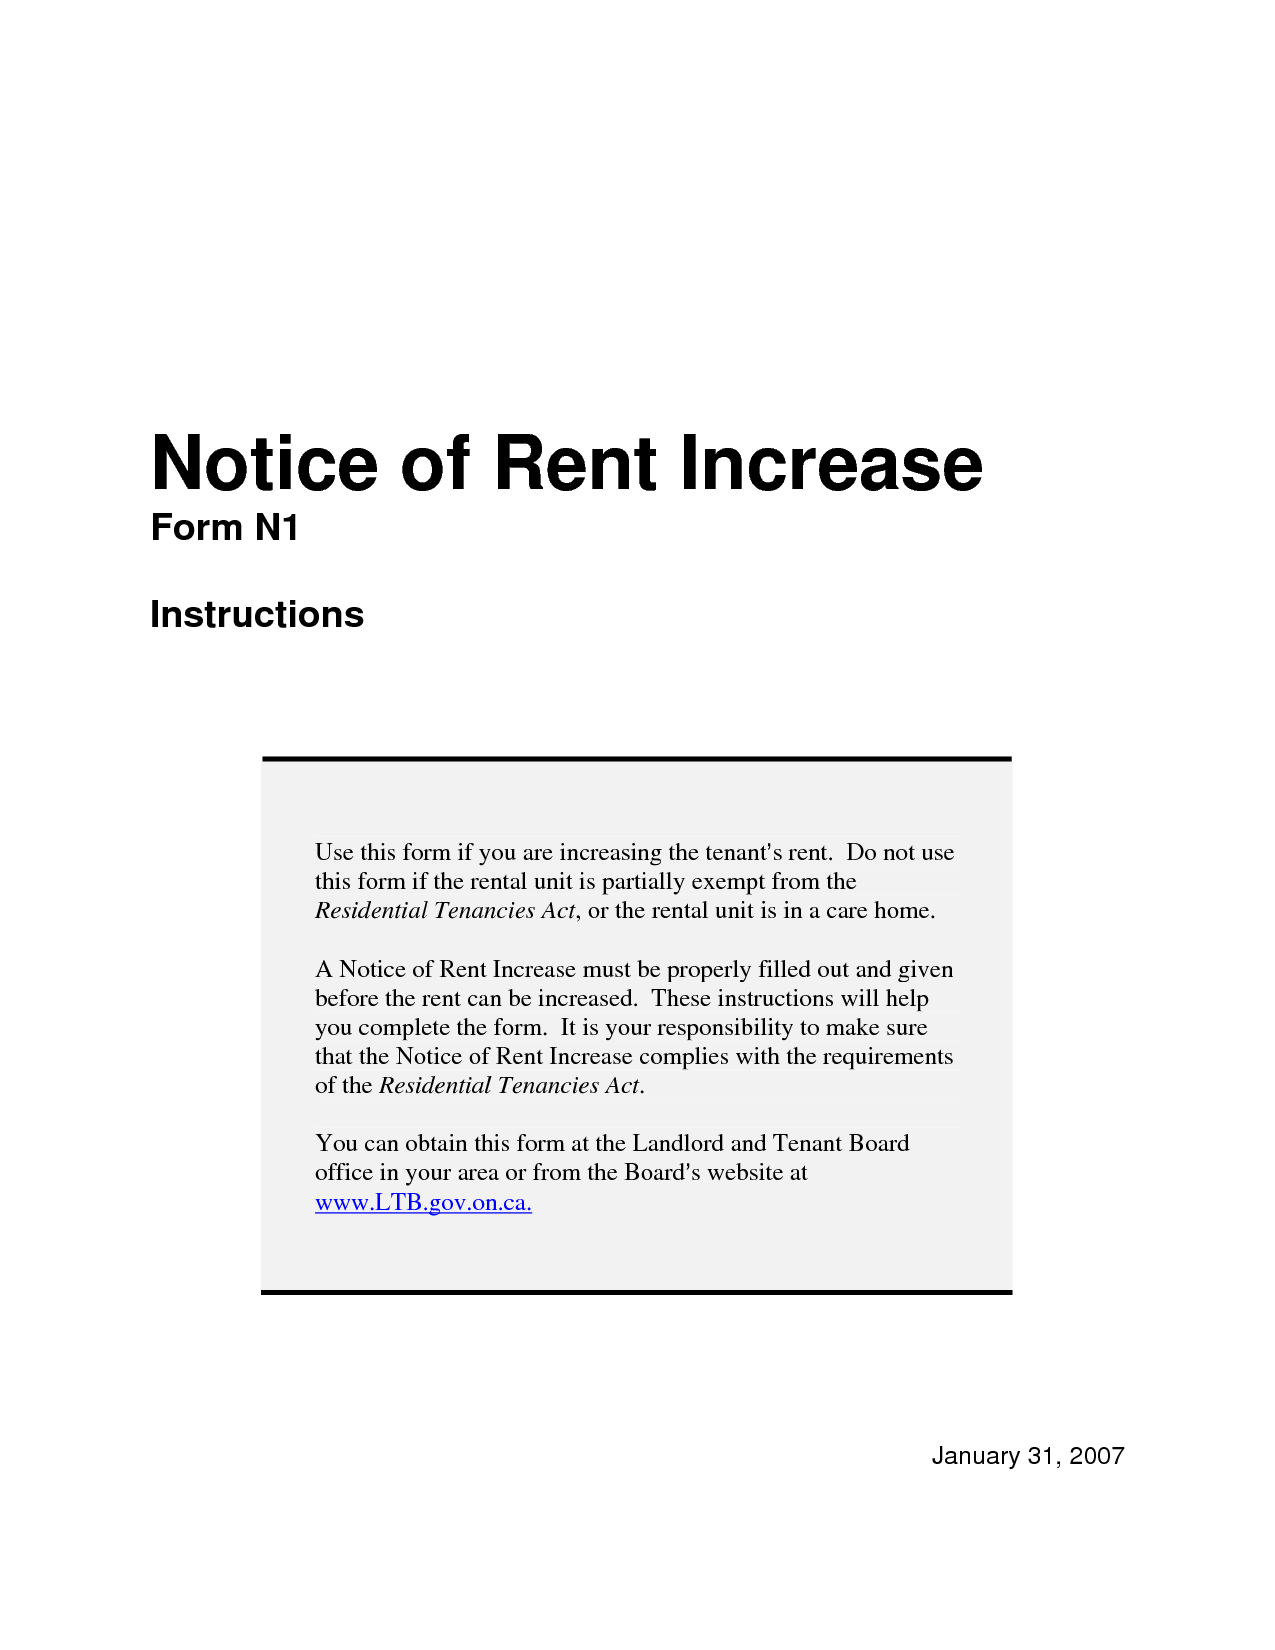 Superb Explore Letter Templates, Letters, And More! Notice Of Rent Increase ...